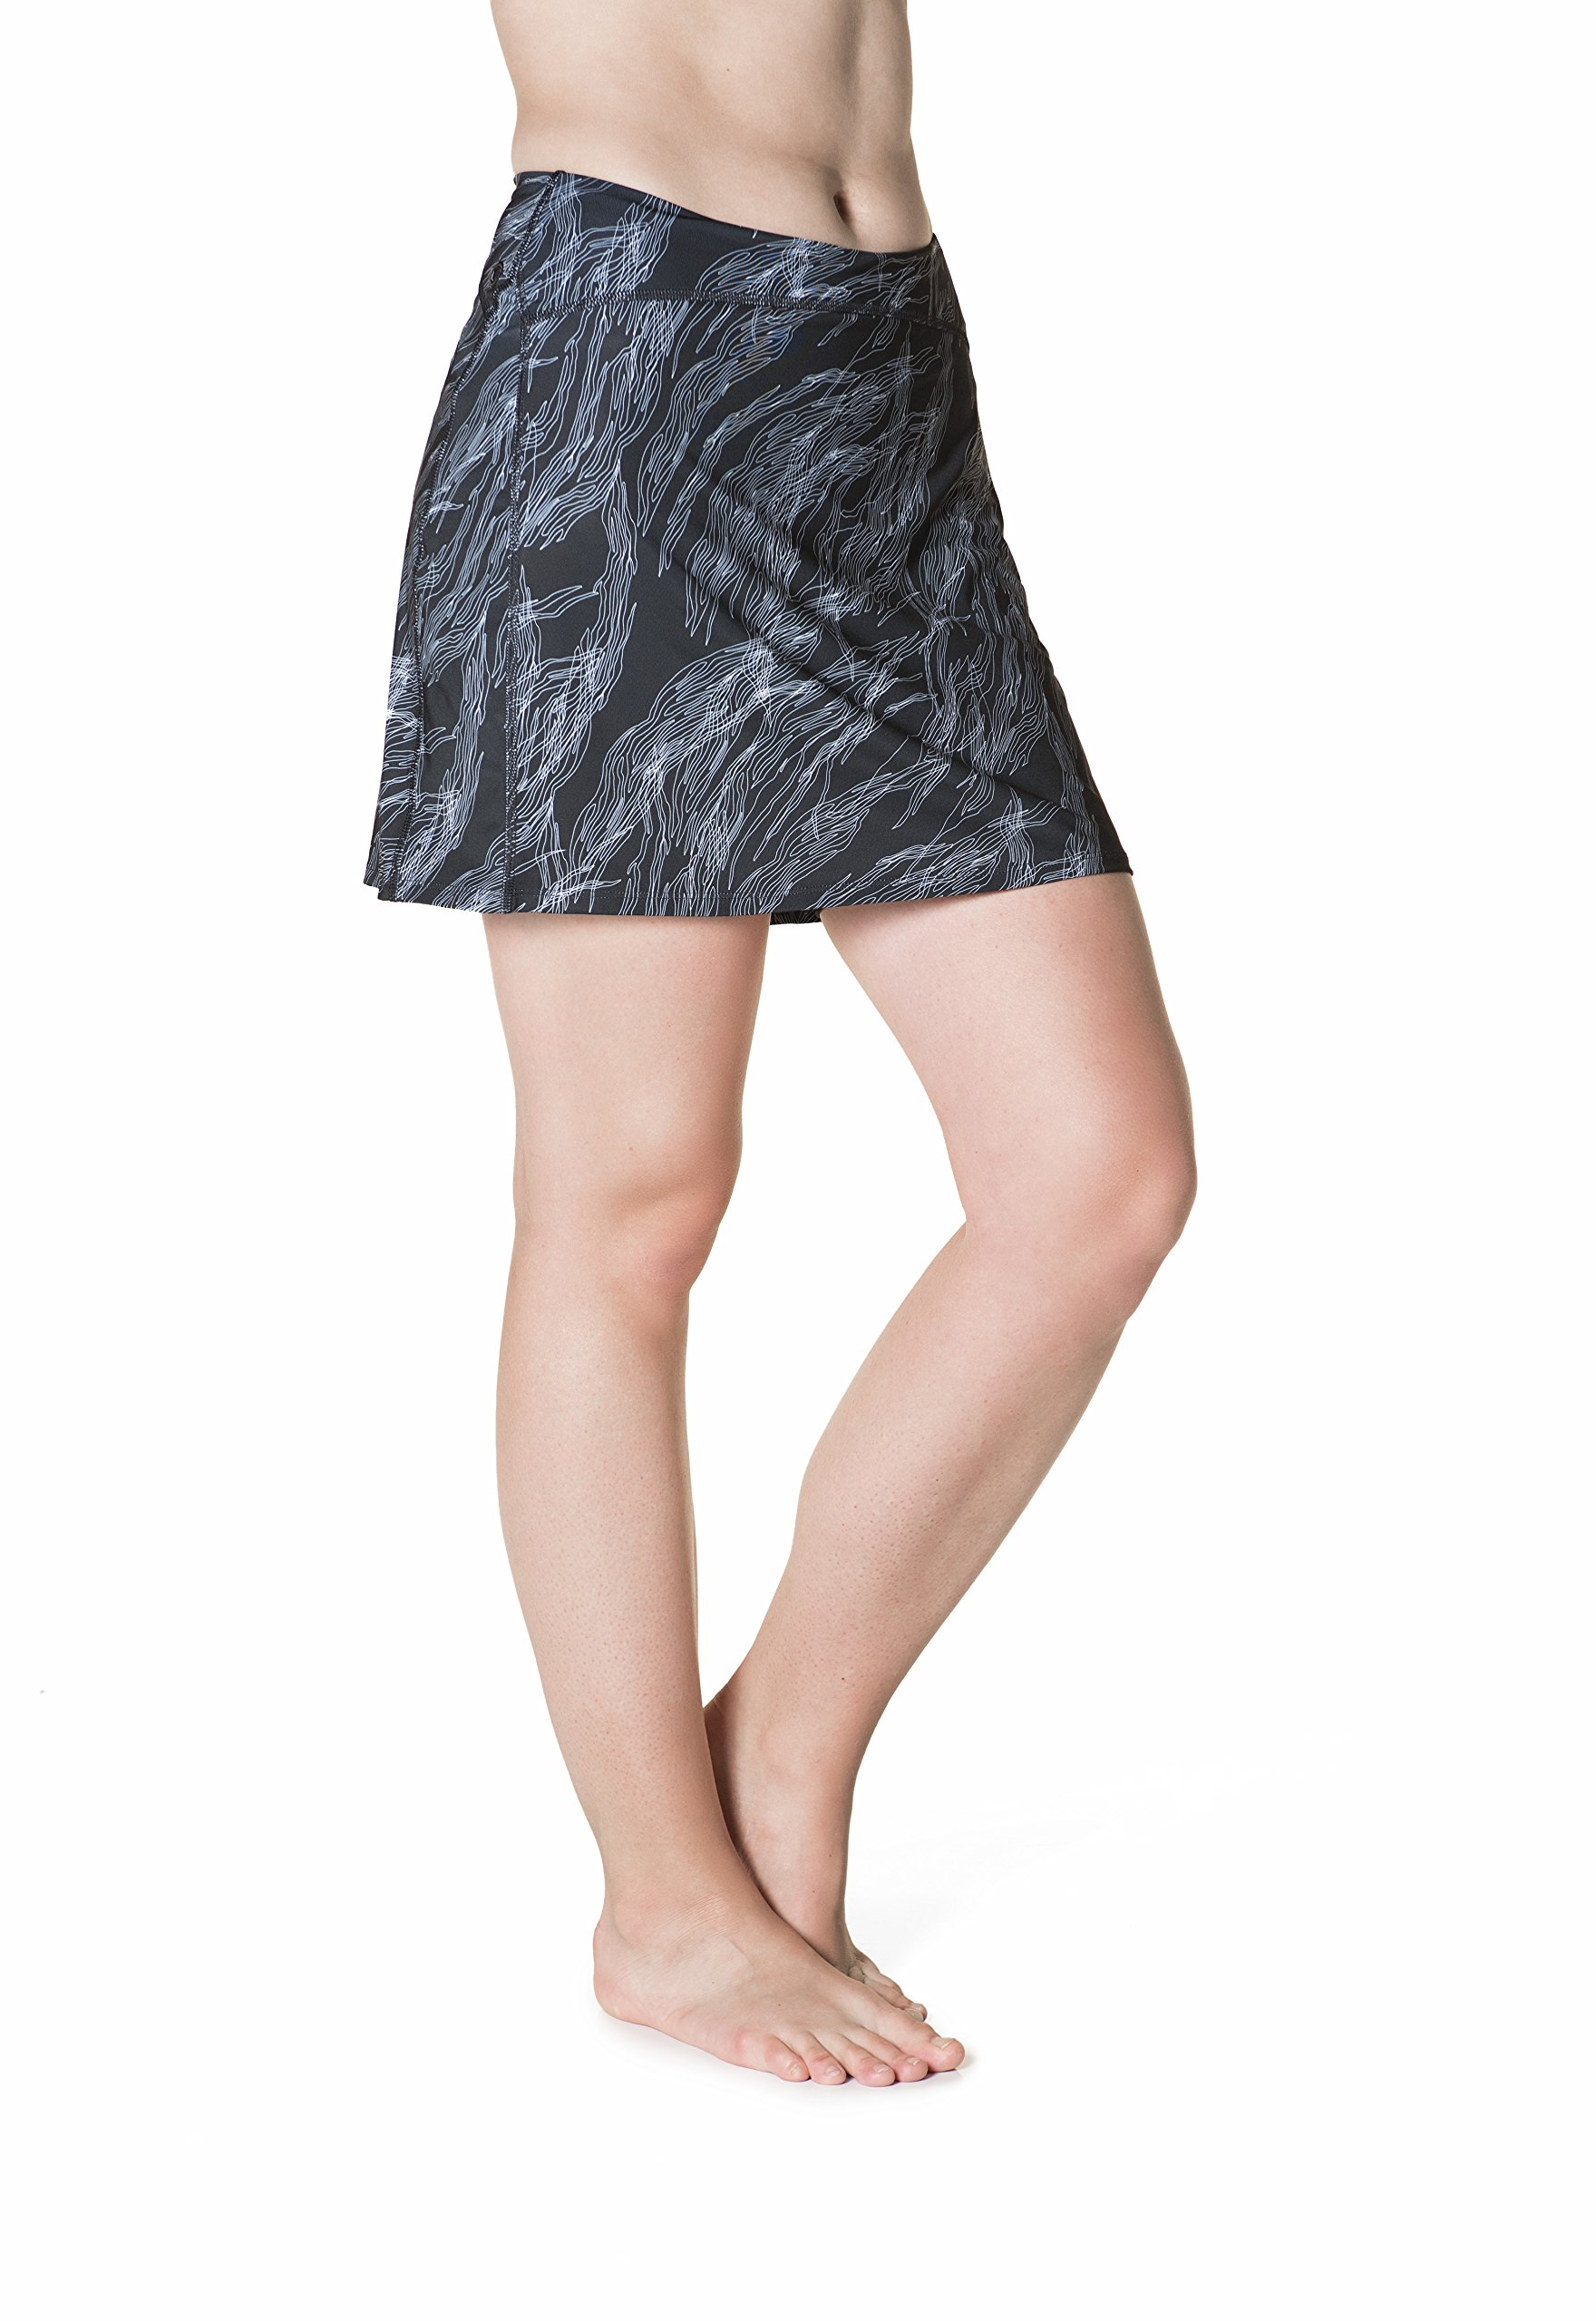 Skirt Sports Women's Happy Girl Skirt by Skirt Sports